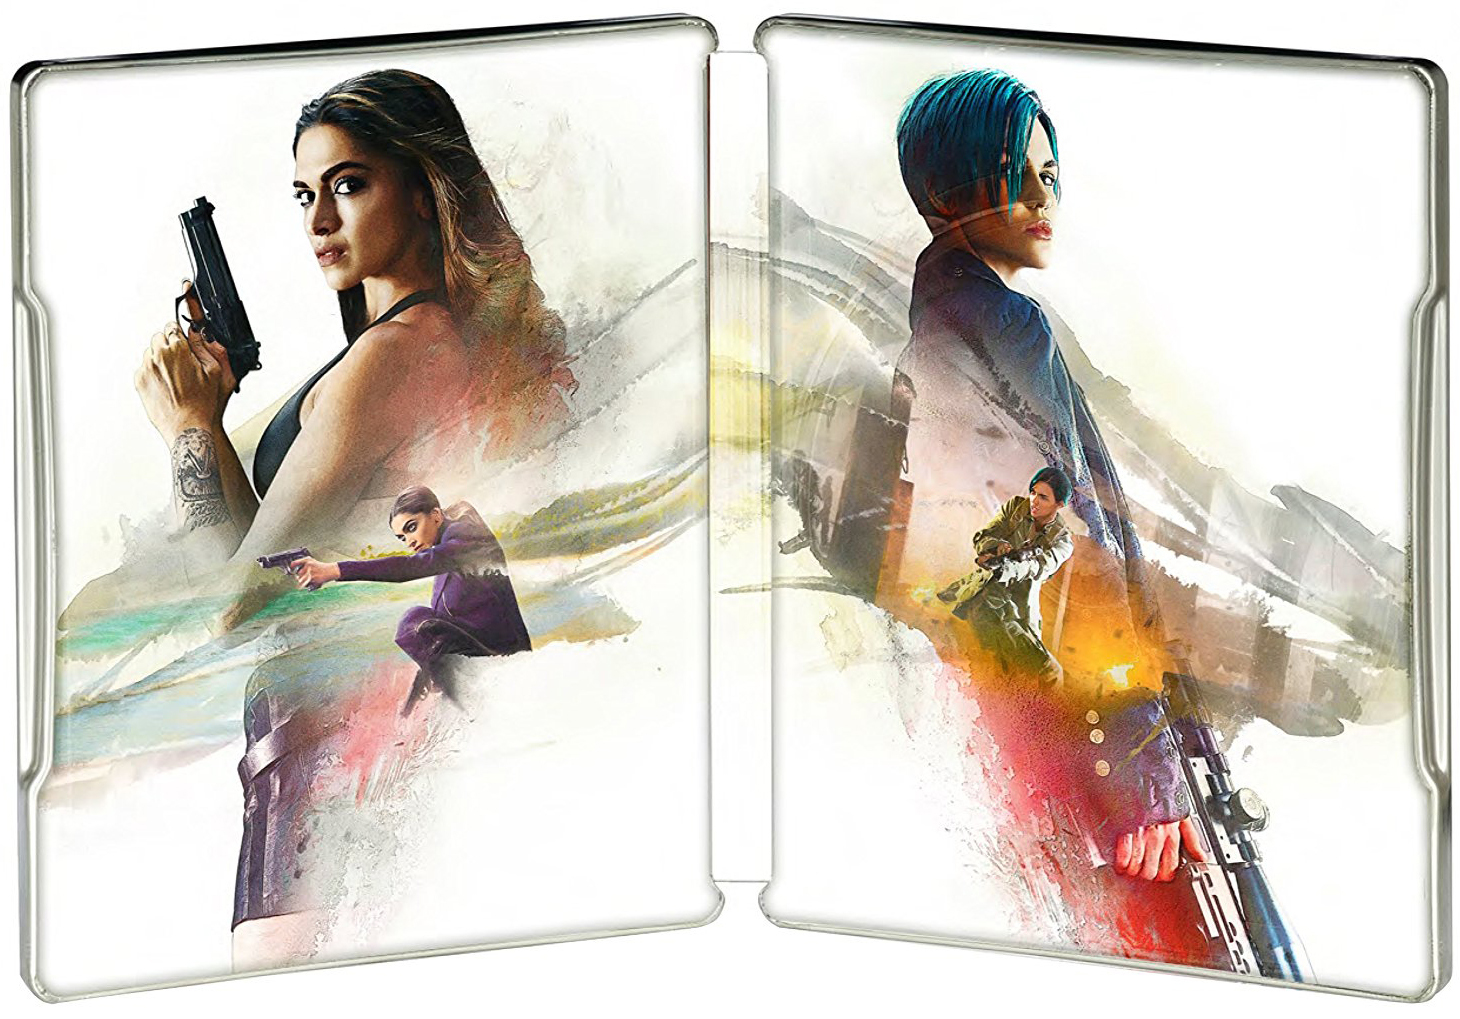 xXx: Return of Xander Cage steelbook スチールブック